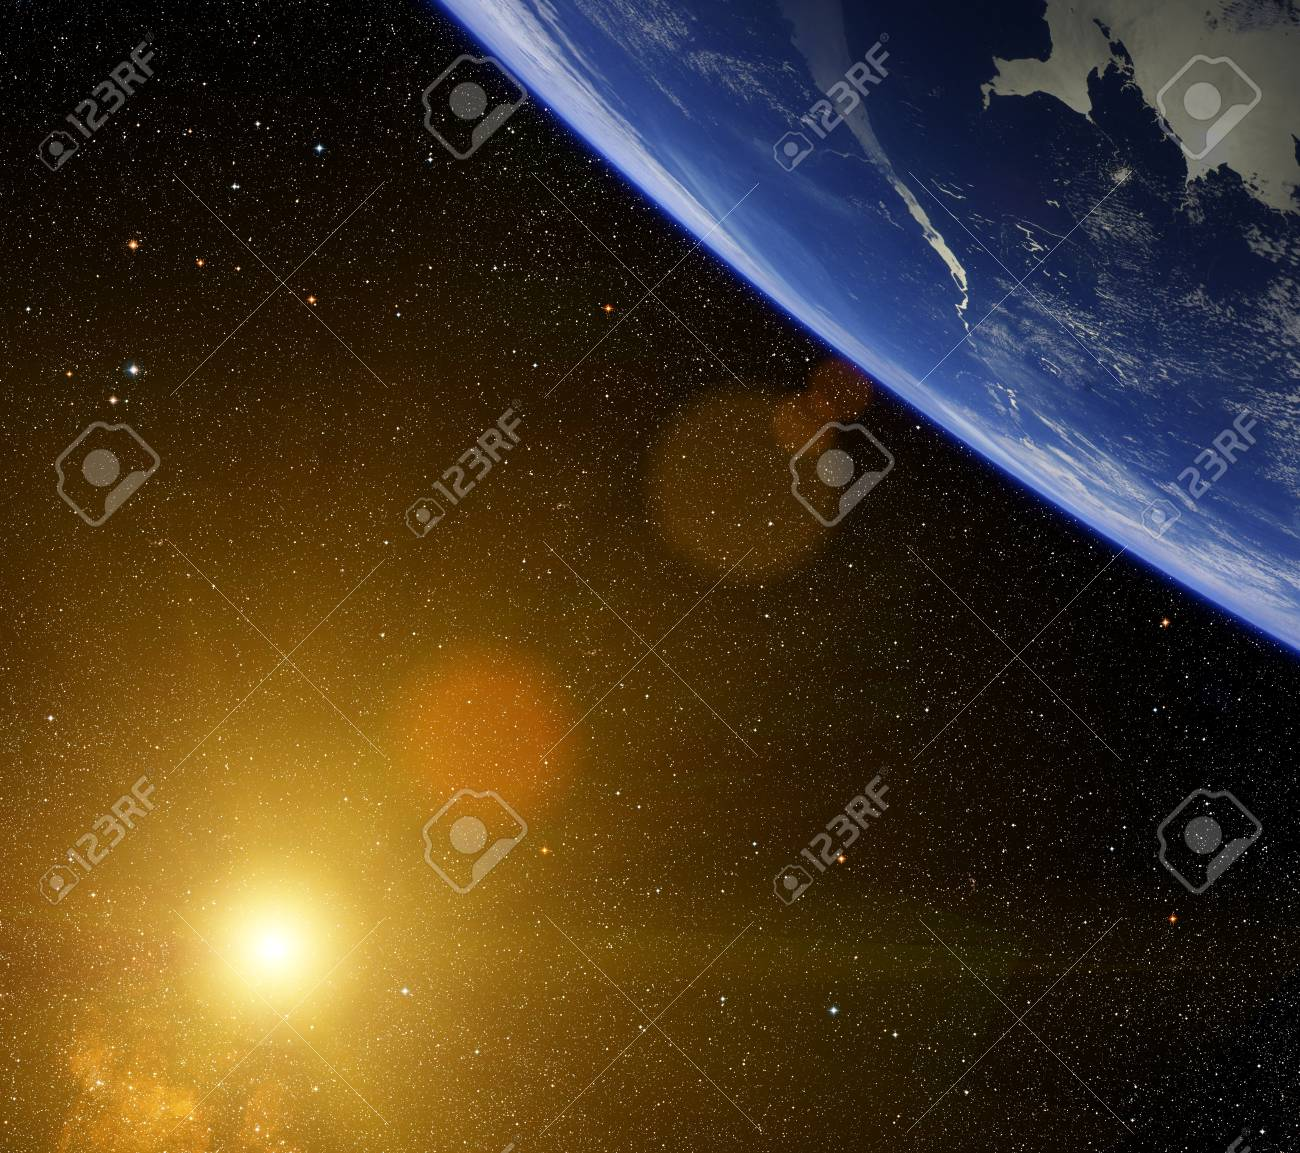 Planet with bright star and lens flare Stock Photo - 20068463